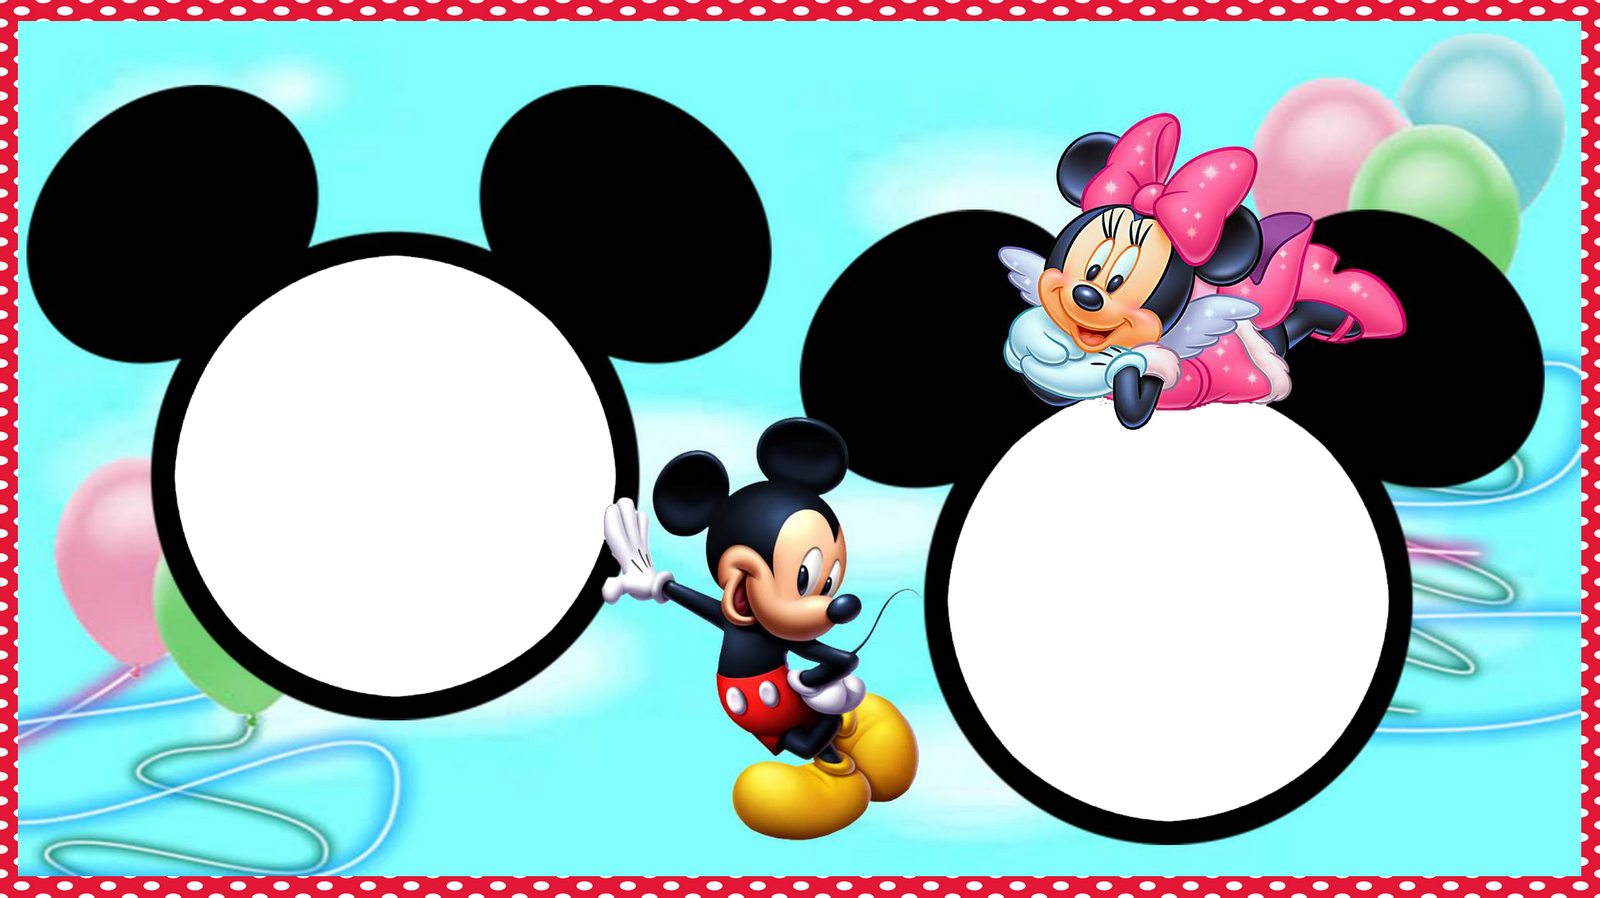 MOLDURA MICKEY E MINNIE 1600 x 898 1114 kB png